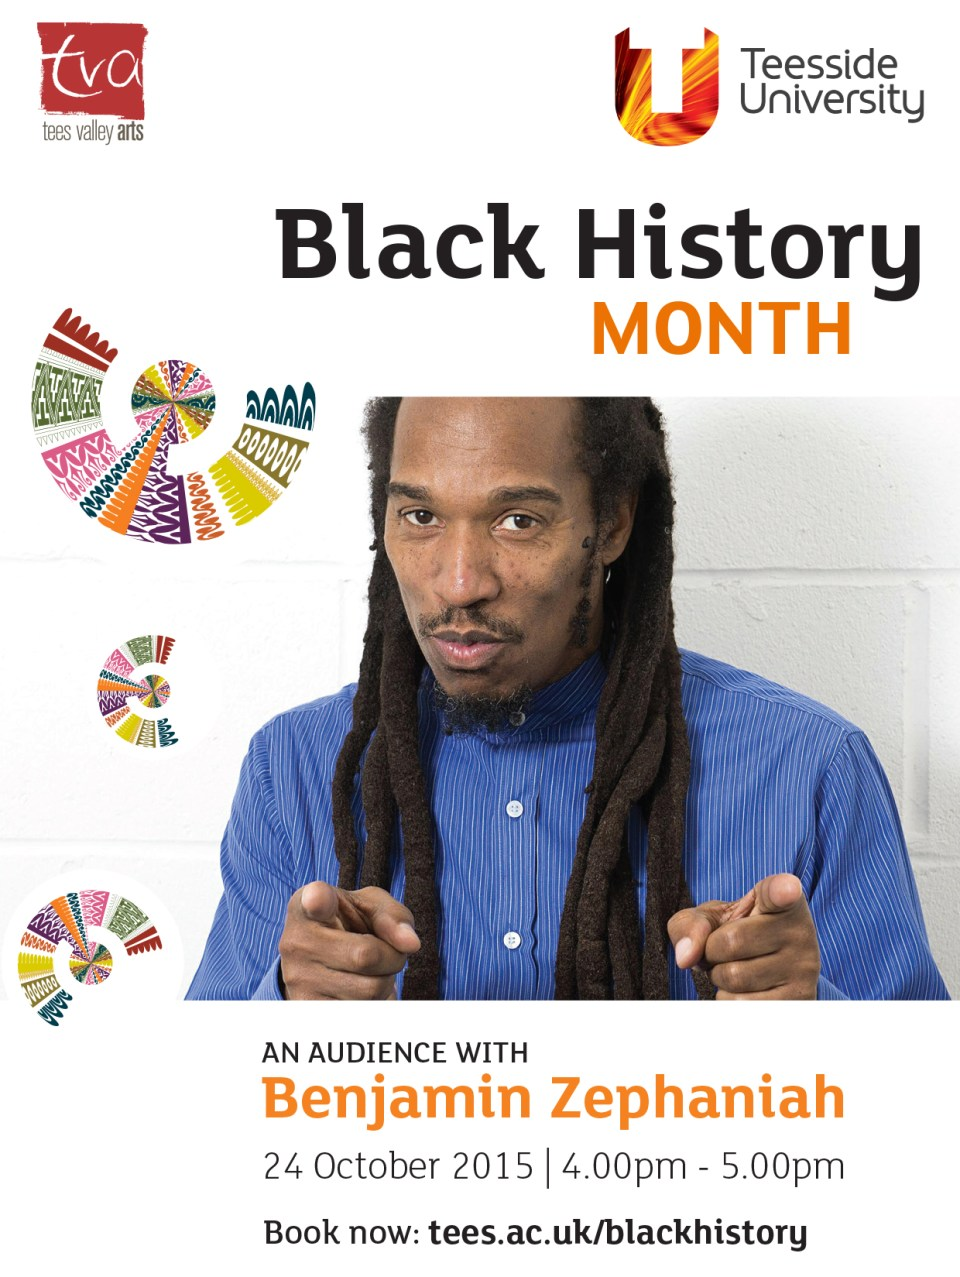 An Audience With Benjamin Zephaniah